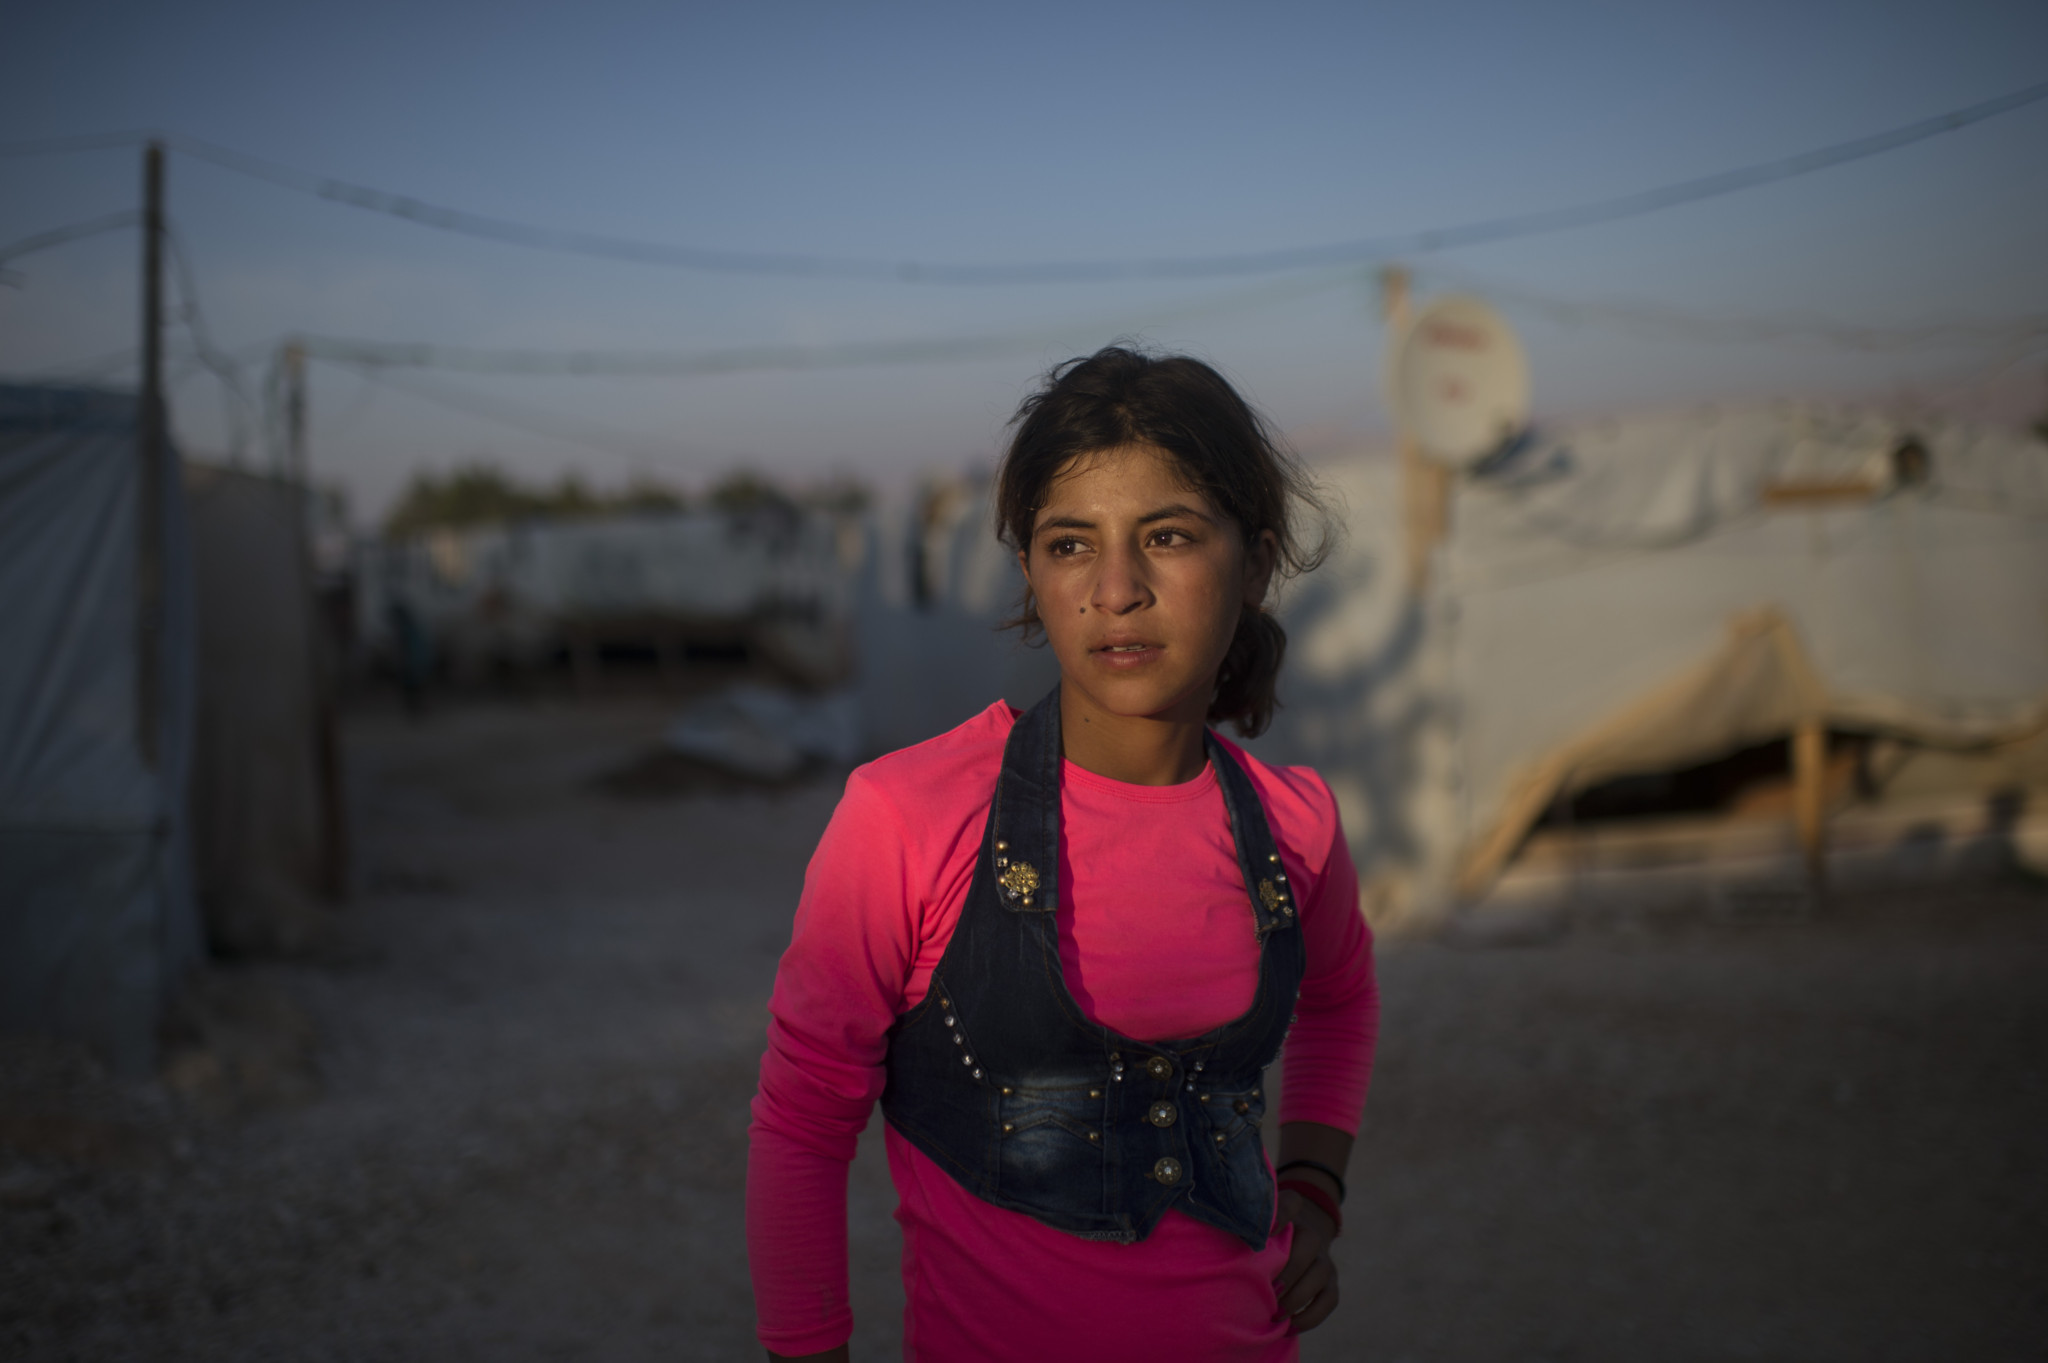 Hanaa Abdullah, 12, poses for a portrait in the informal tented settlement she lives in with her family and other Syrian refugees,in the Bekaa Valley, between the city of Zahle and Baalbak, in Lebanon, August 1, 2015.  Hanaa and her family fled Syria in 2011 at the beginning of the Syrian civil war, and moved to this settlement two years ago, along with other Syrian refugees from Hasaka and the surrounding areas. Hanaa and other children in the settlement work for up to ten hours a day in agricultural lands owned by Lebanese in the area, and earn the equivalent of $5. per day.  Photographs by: Lynsey Addario/Getty Images Reportage